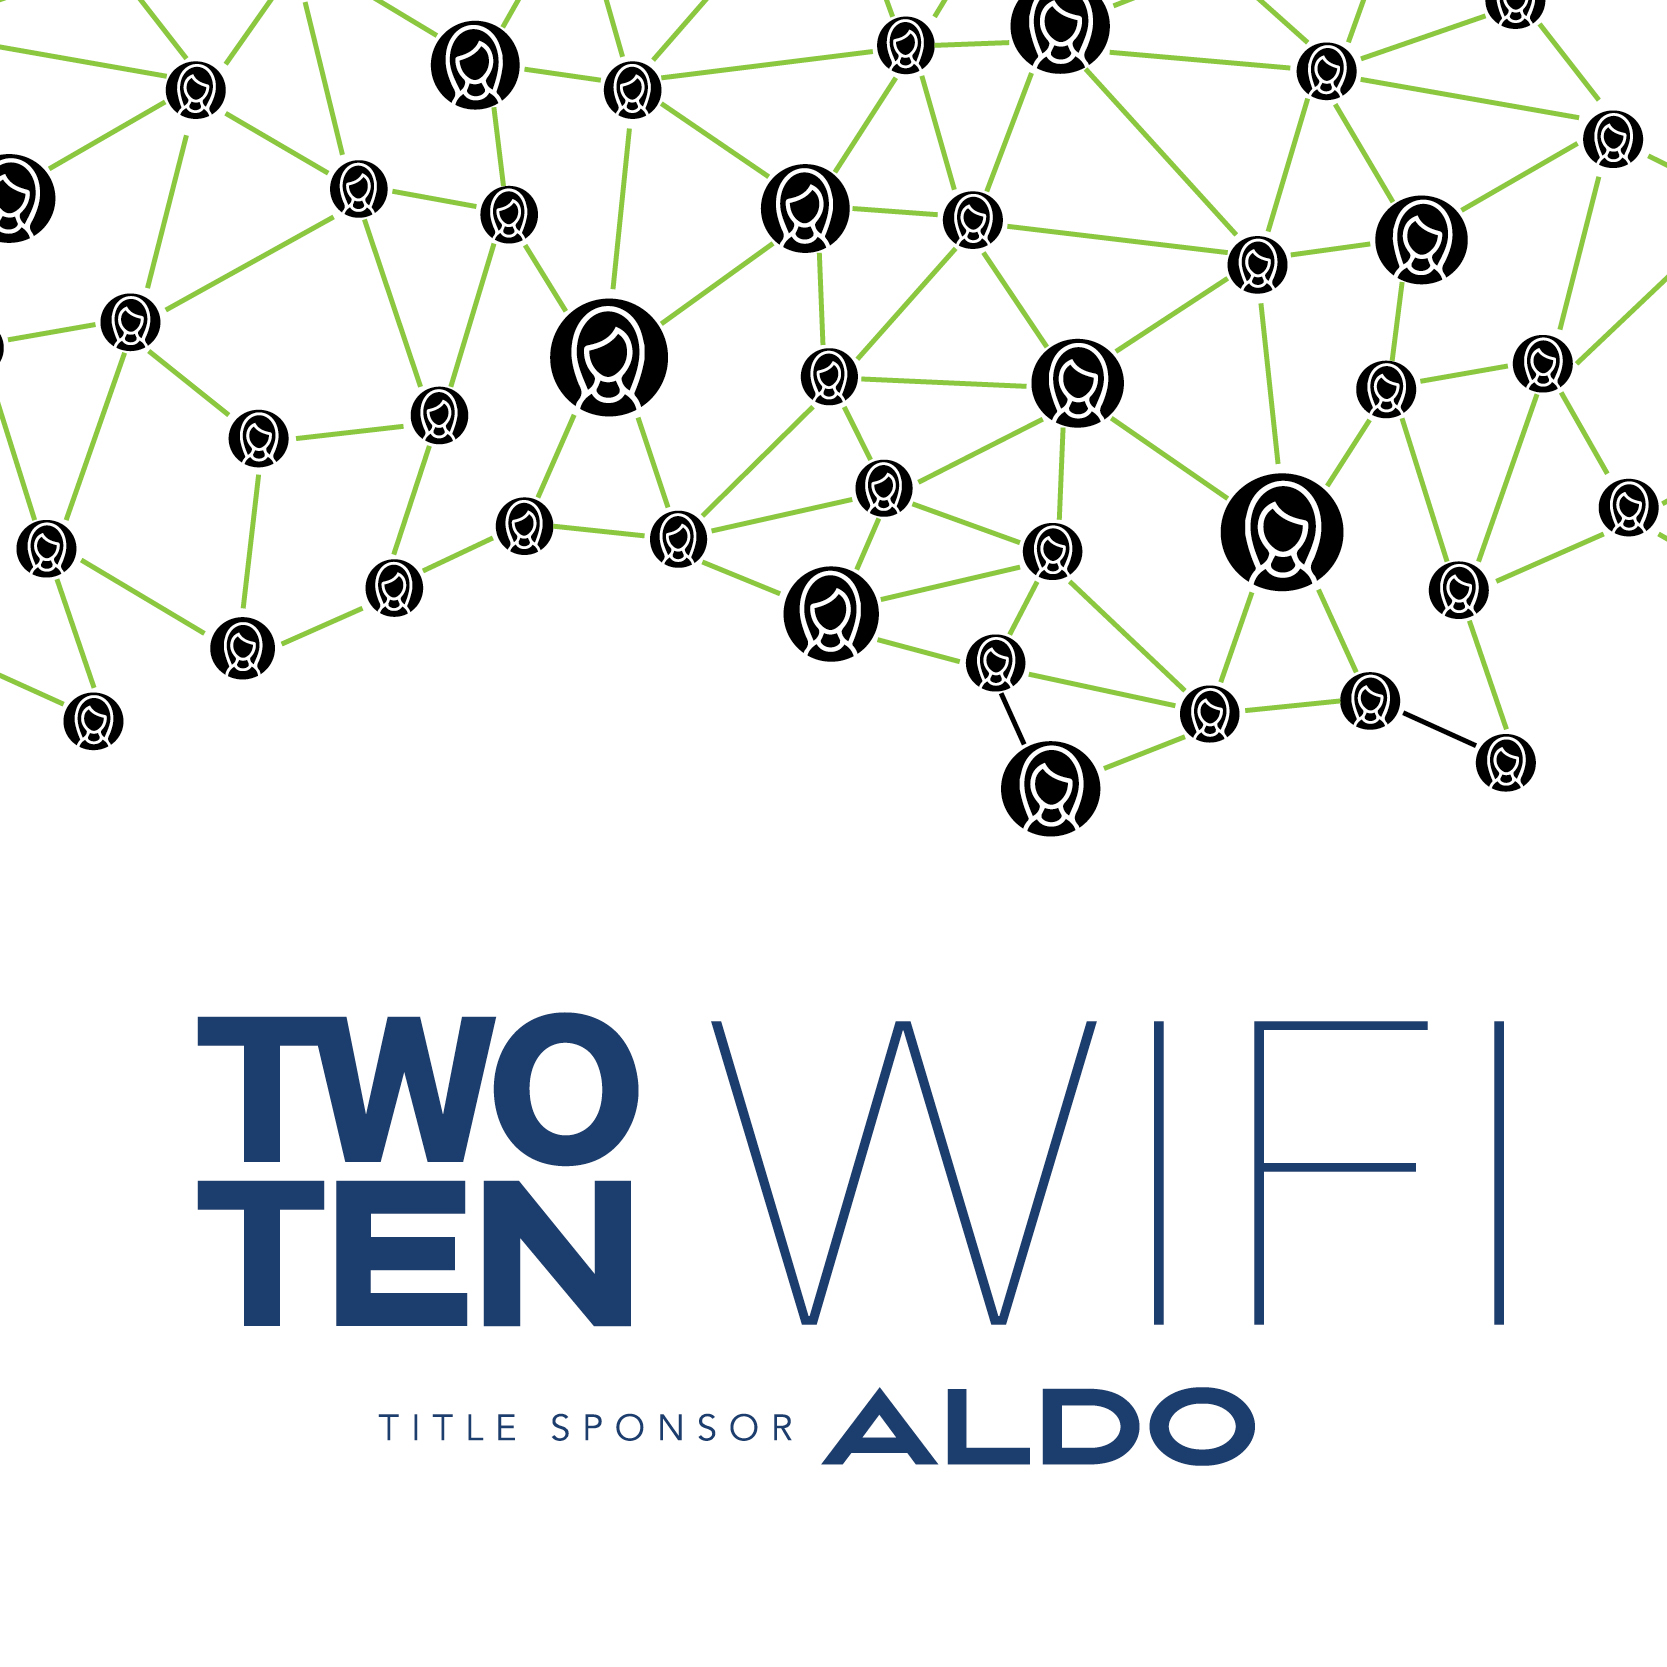 WIFI Charlotte - The Art of Networking @ Brewers at 4001 Yancy | Charlotte | North Carolina | United States